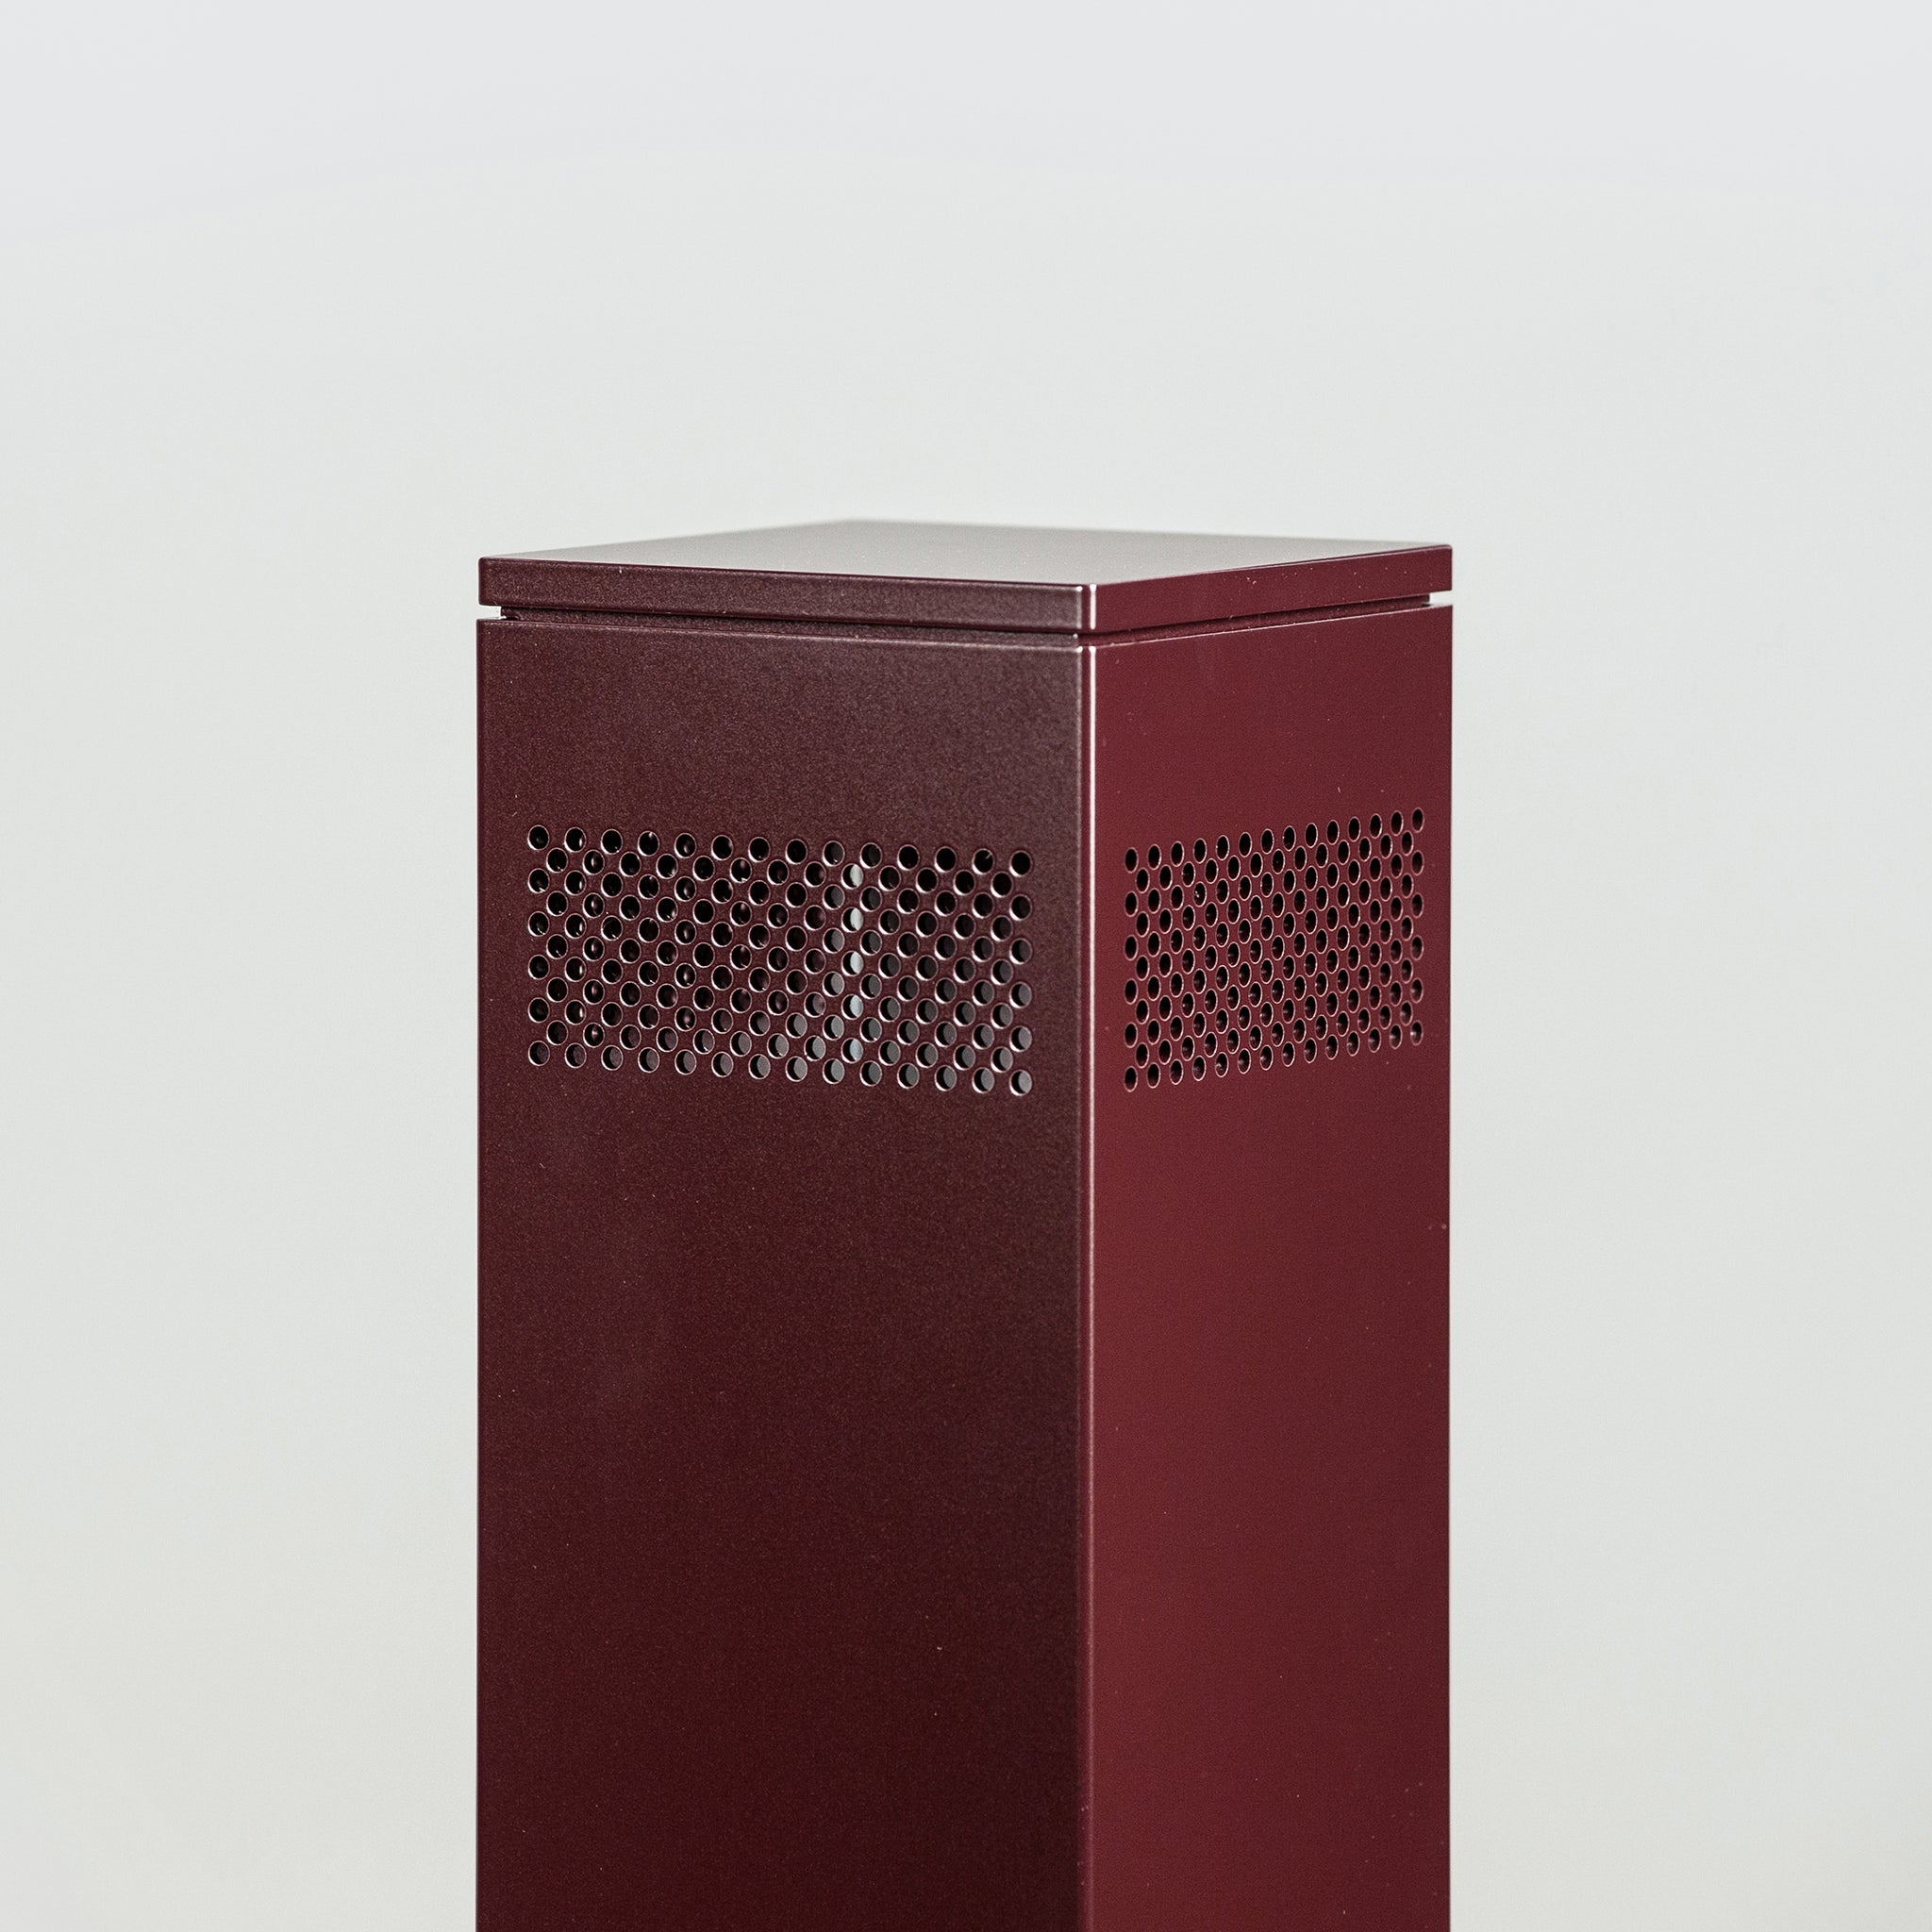 HAAL ROSA Scenting Device B1 in RAL 3007, Schwarzrot (powder-coated)